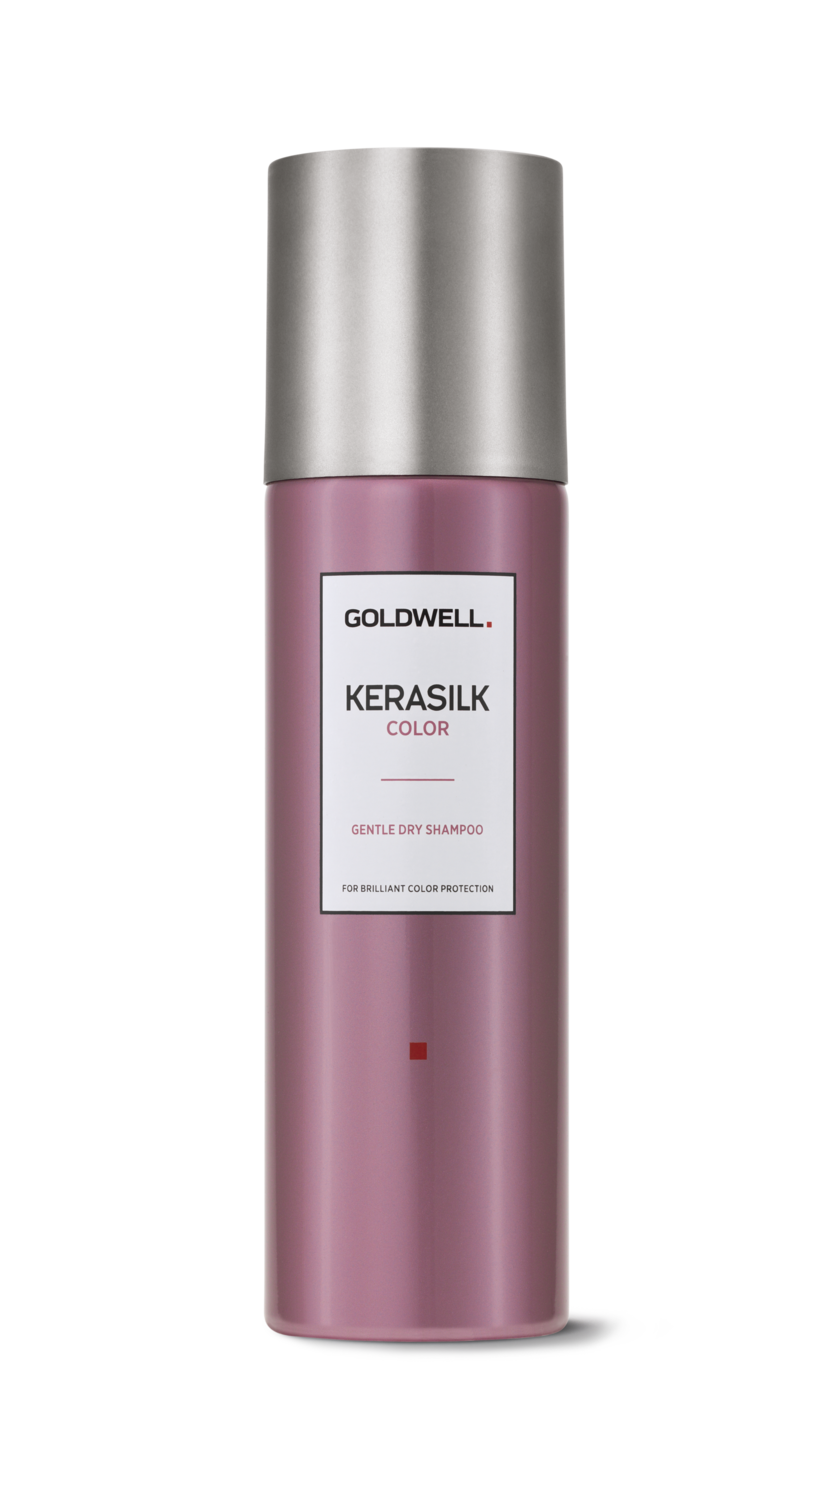 Goldwell Kerasilk Color Gentle Dry Shampoo 200 ml